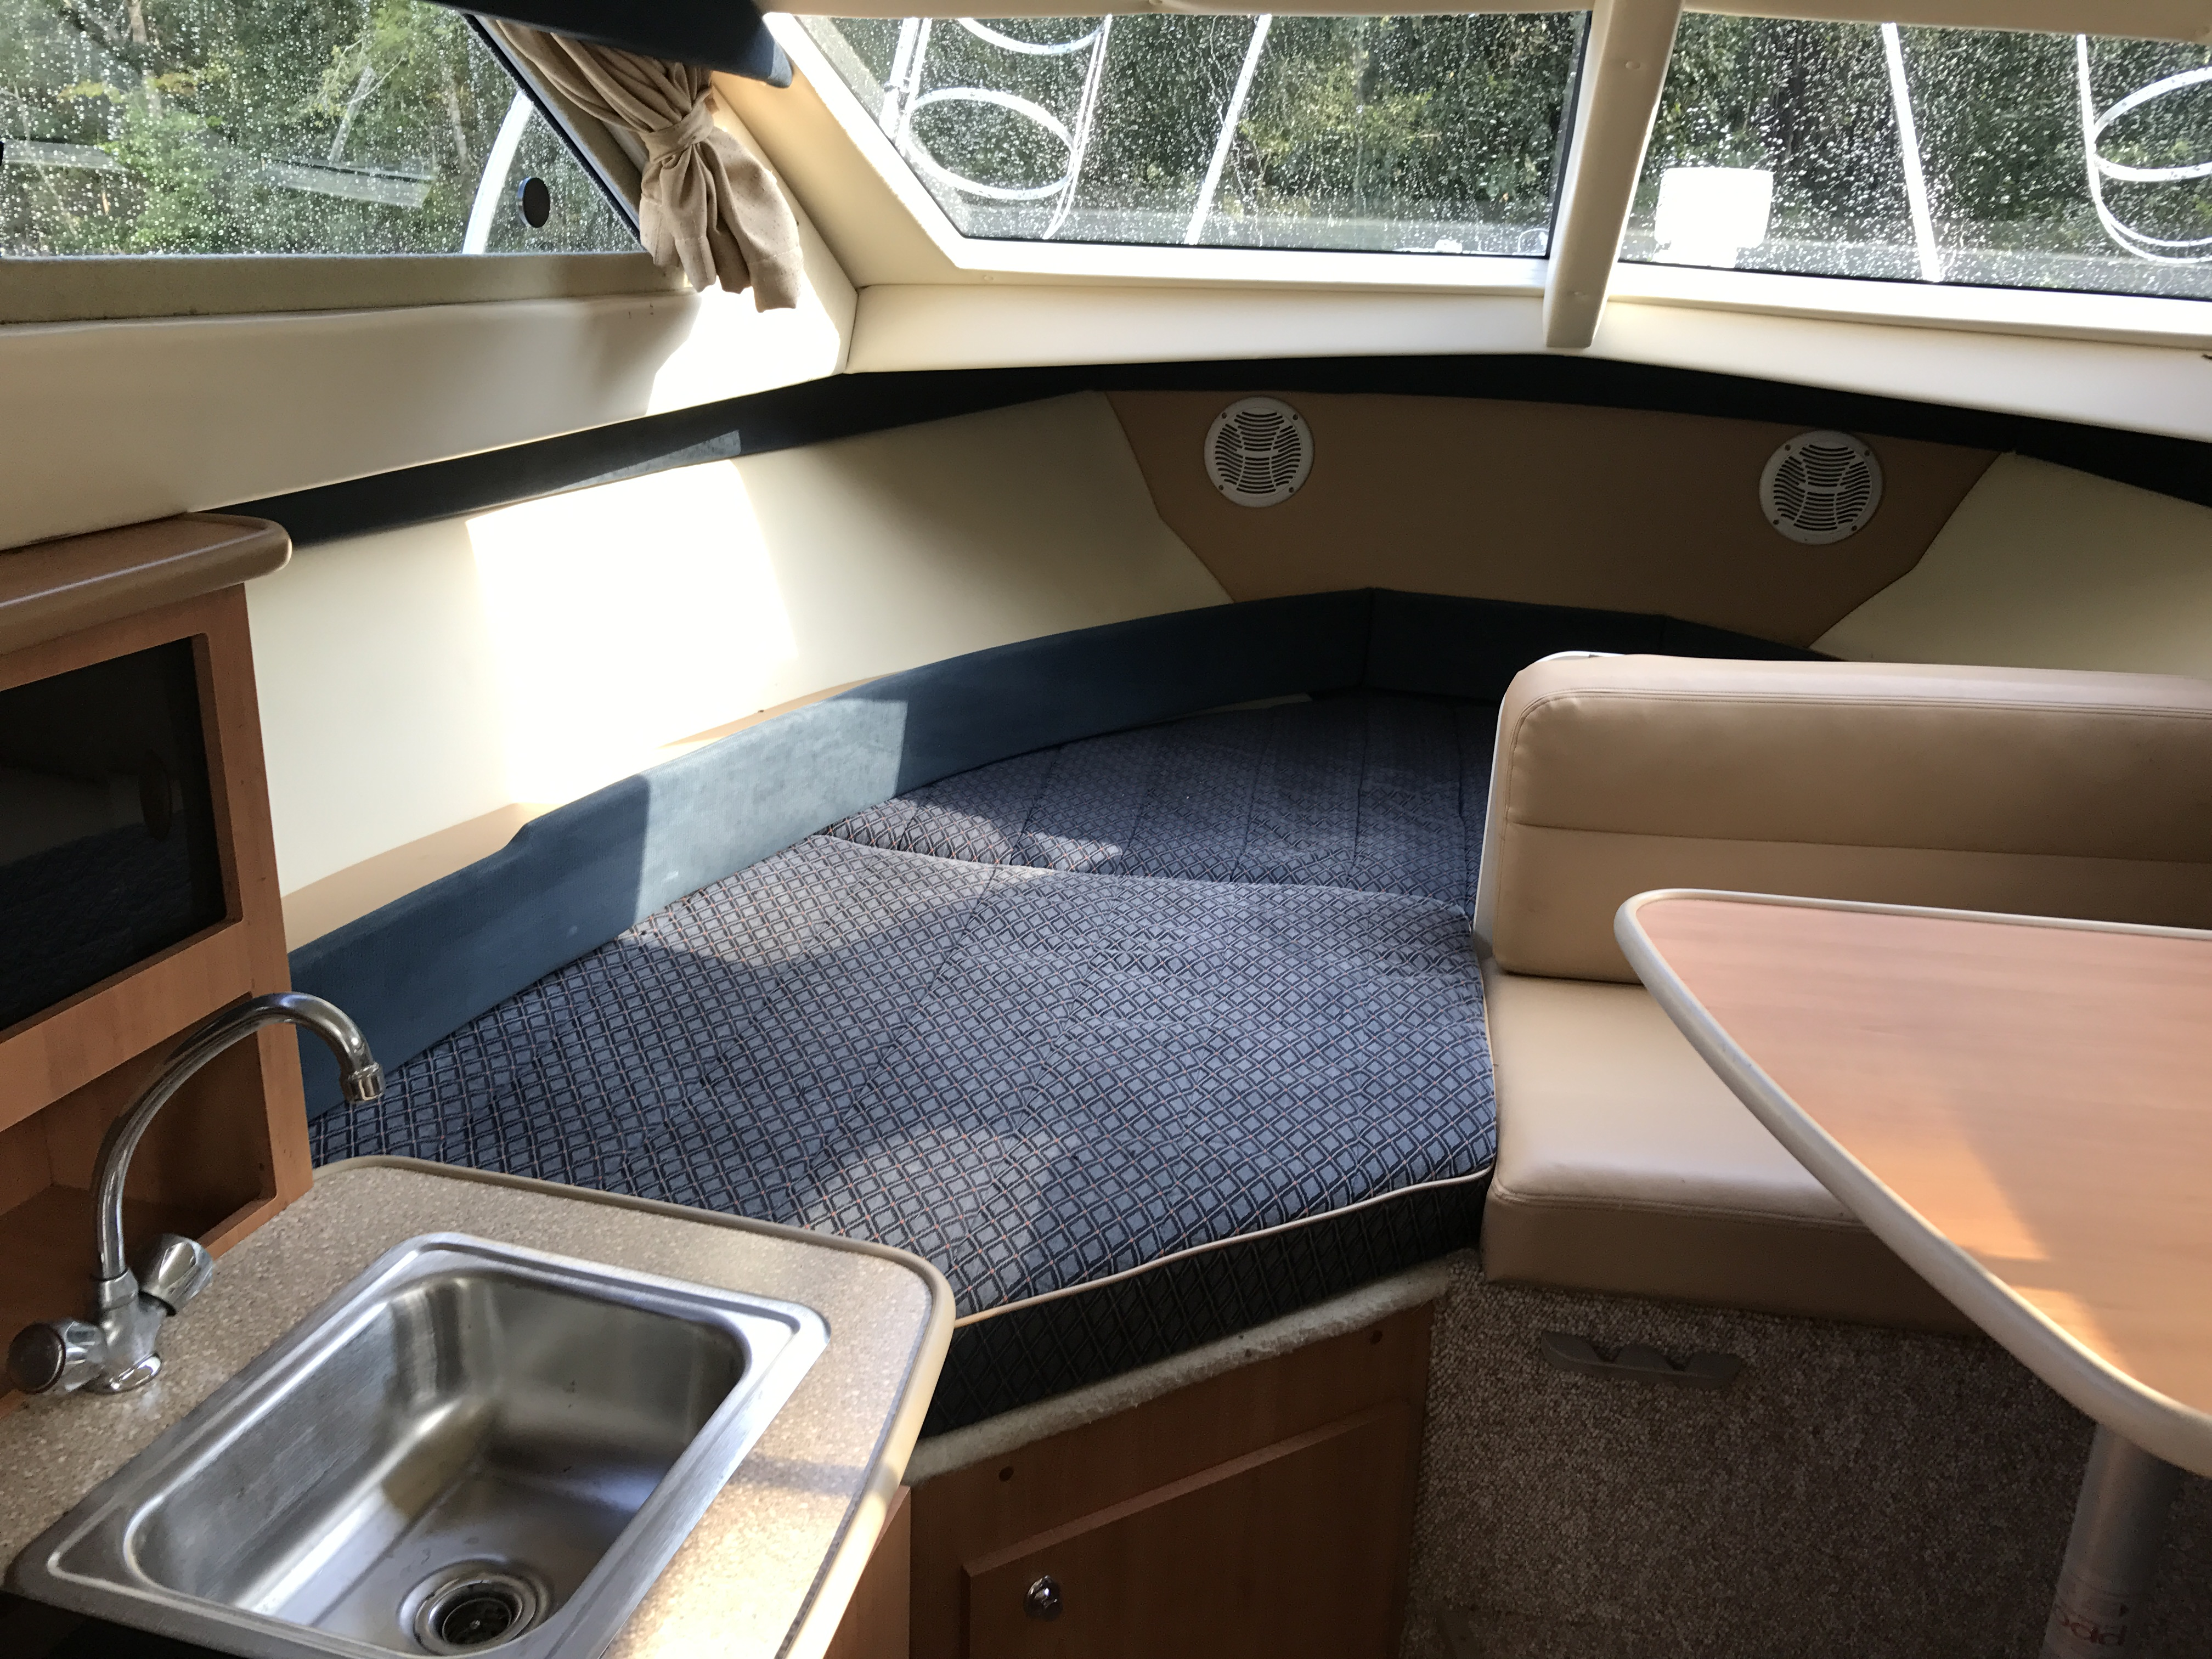 Bayliner Discovery 246 EC - Lots of windows and sunlight below deck